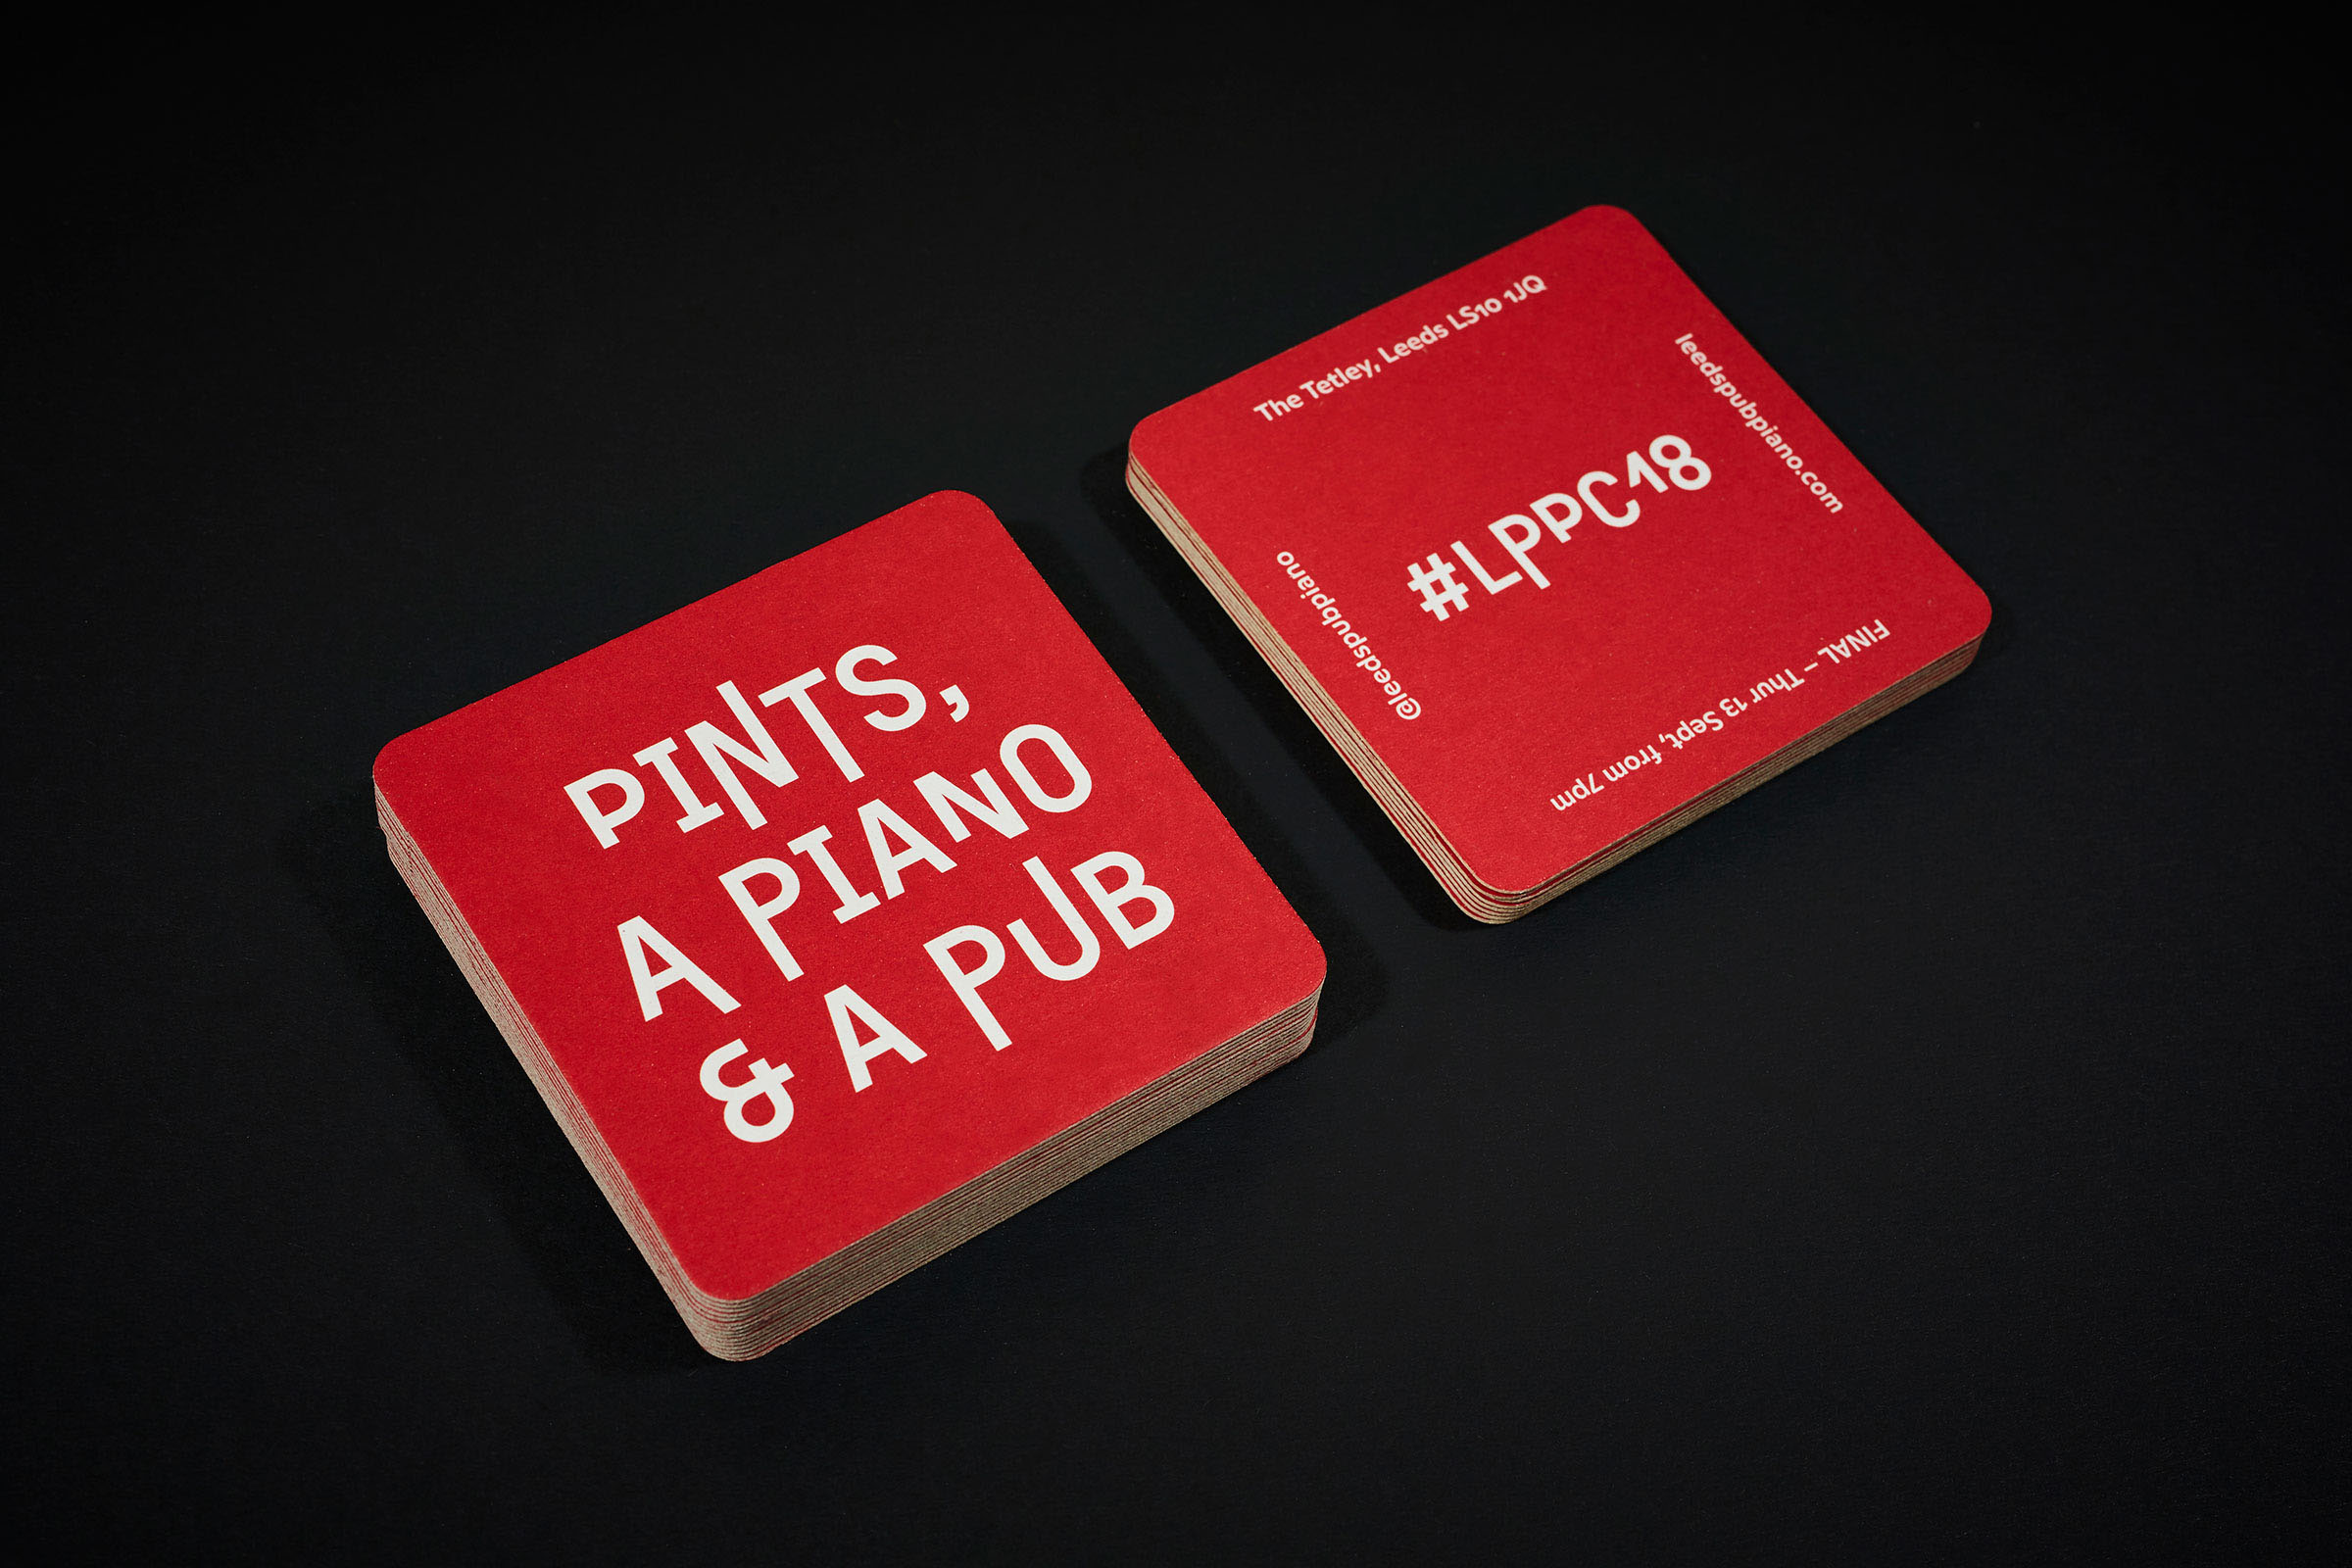 InspoFinds-Leeds-Pub-Piano-Competition